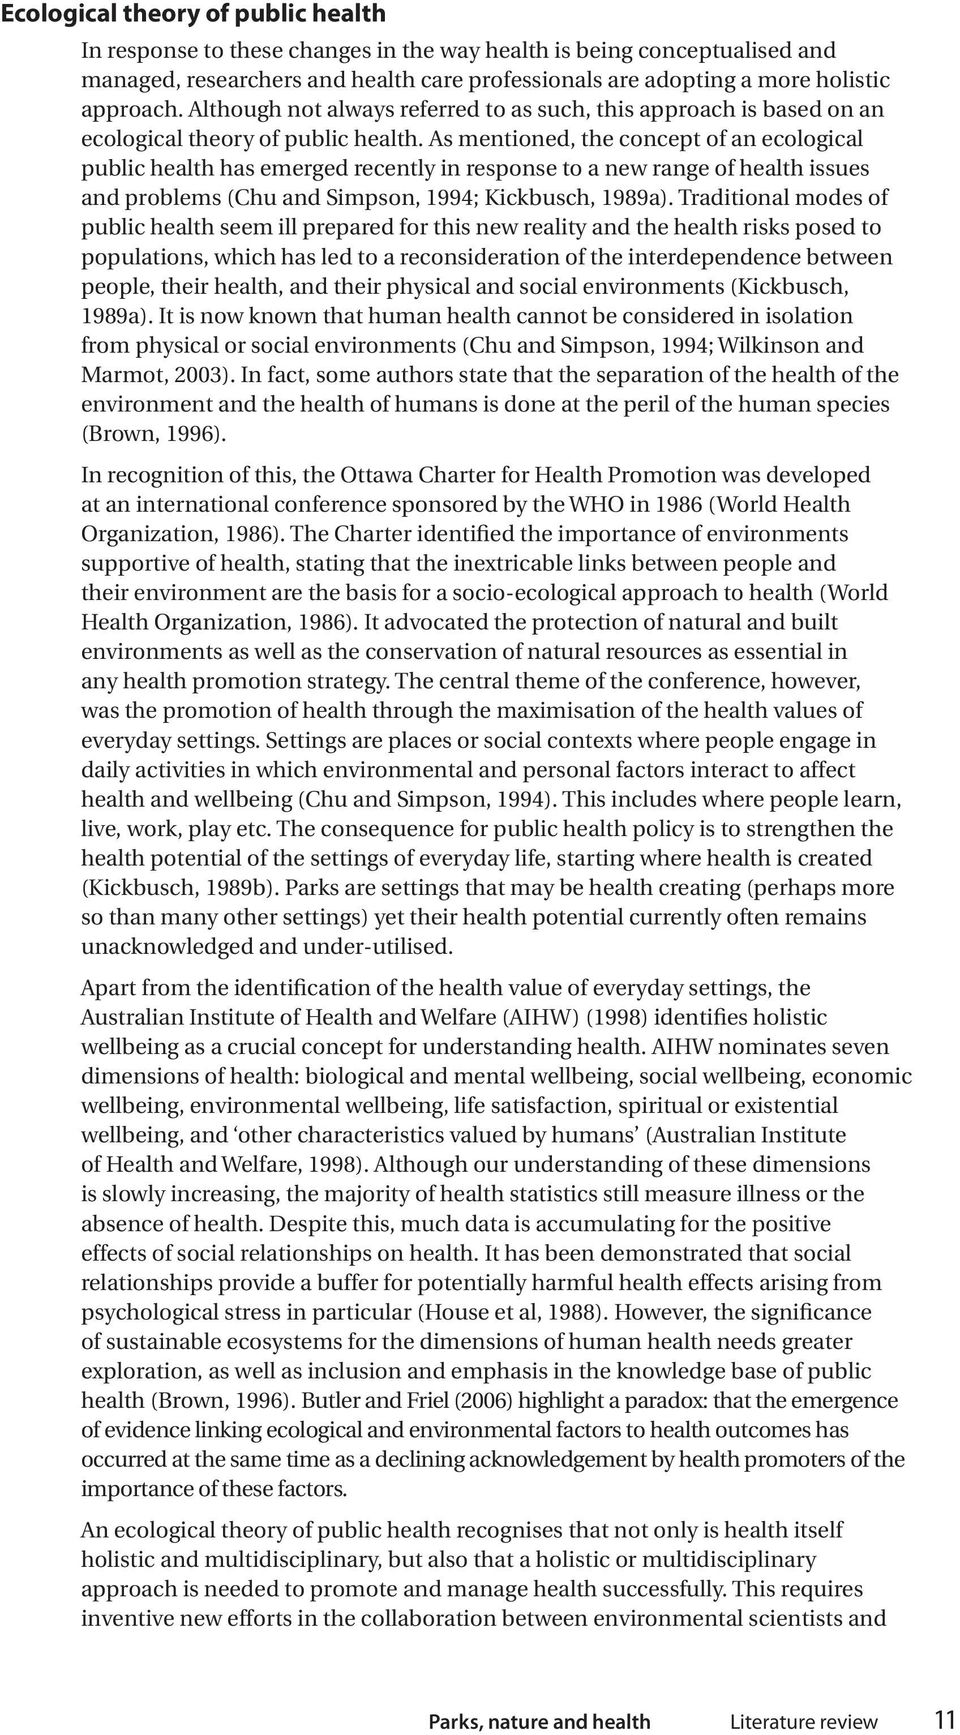 As mentioned, the concept of an ecological public health has emerged recently in response to a new range of health issues and problems (Chu and Simpson, 1994; Kickbusch, 1989a).